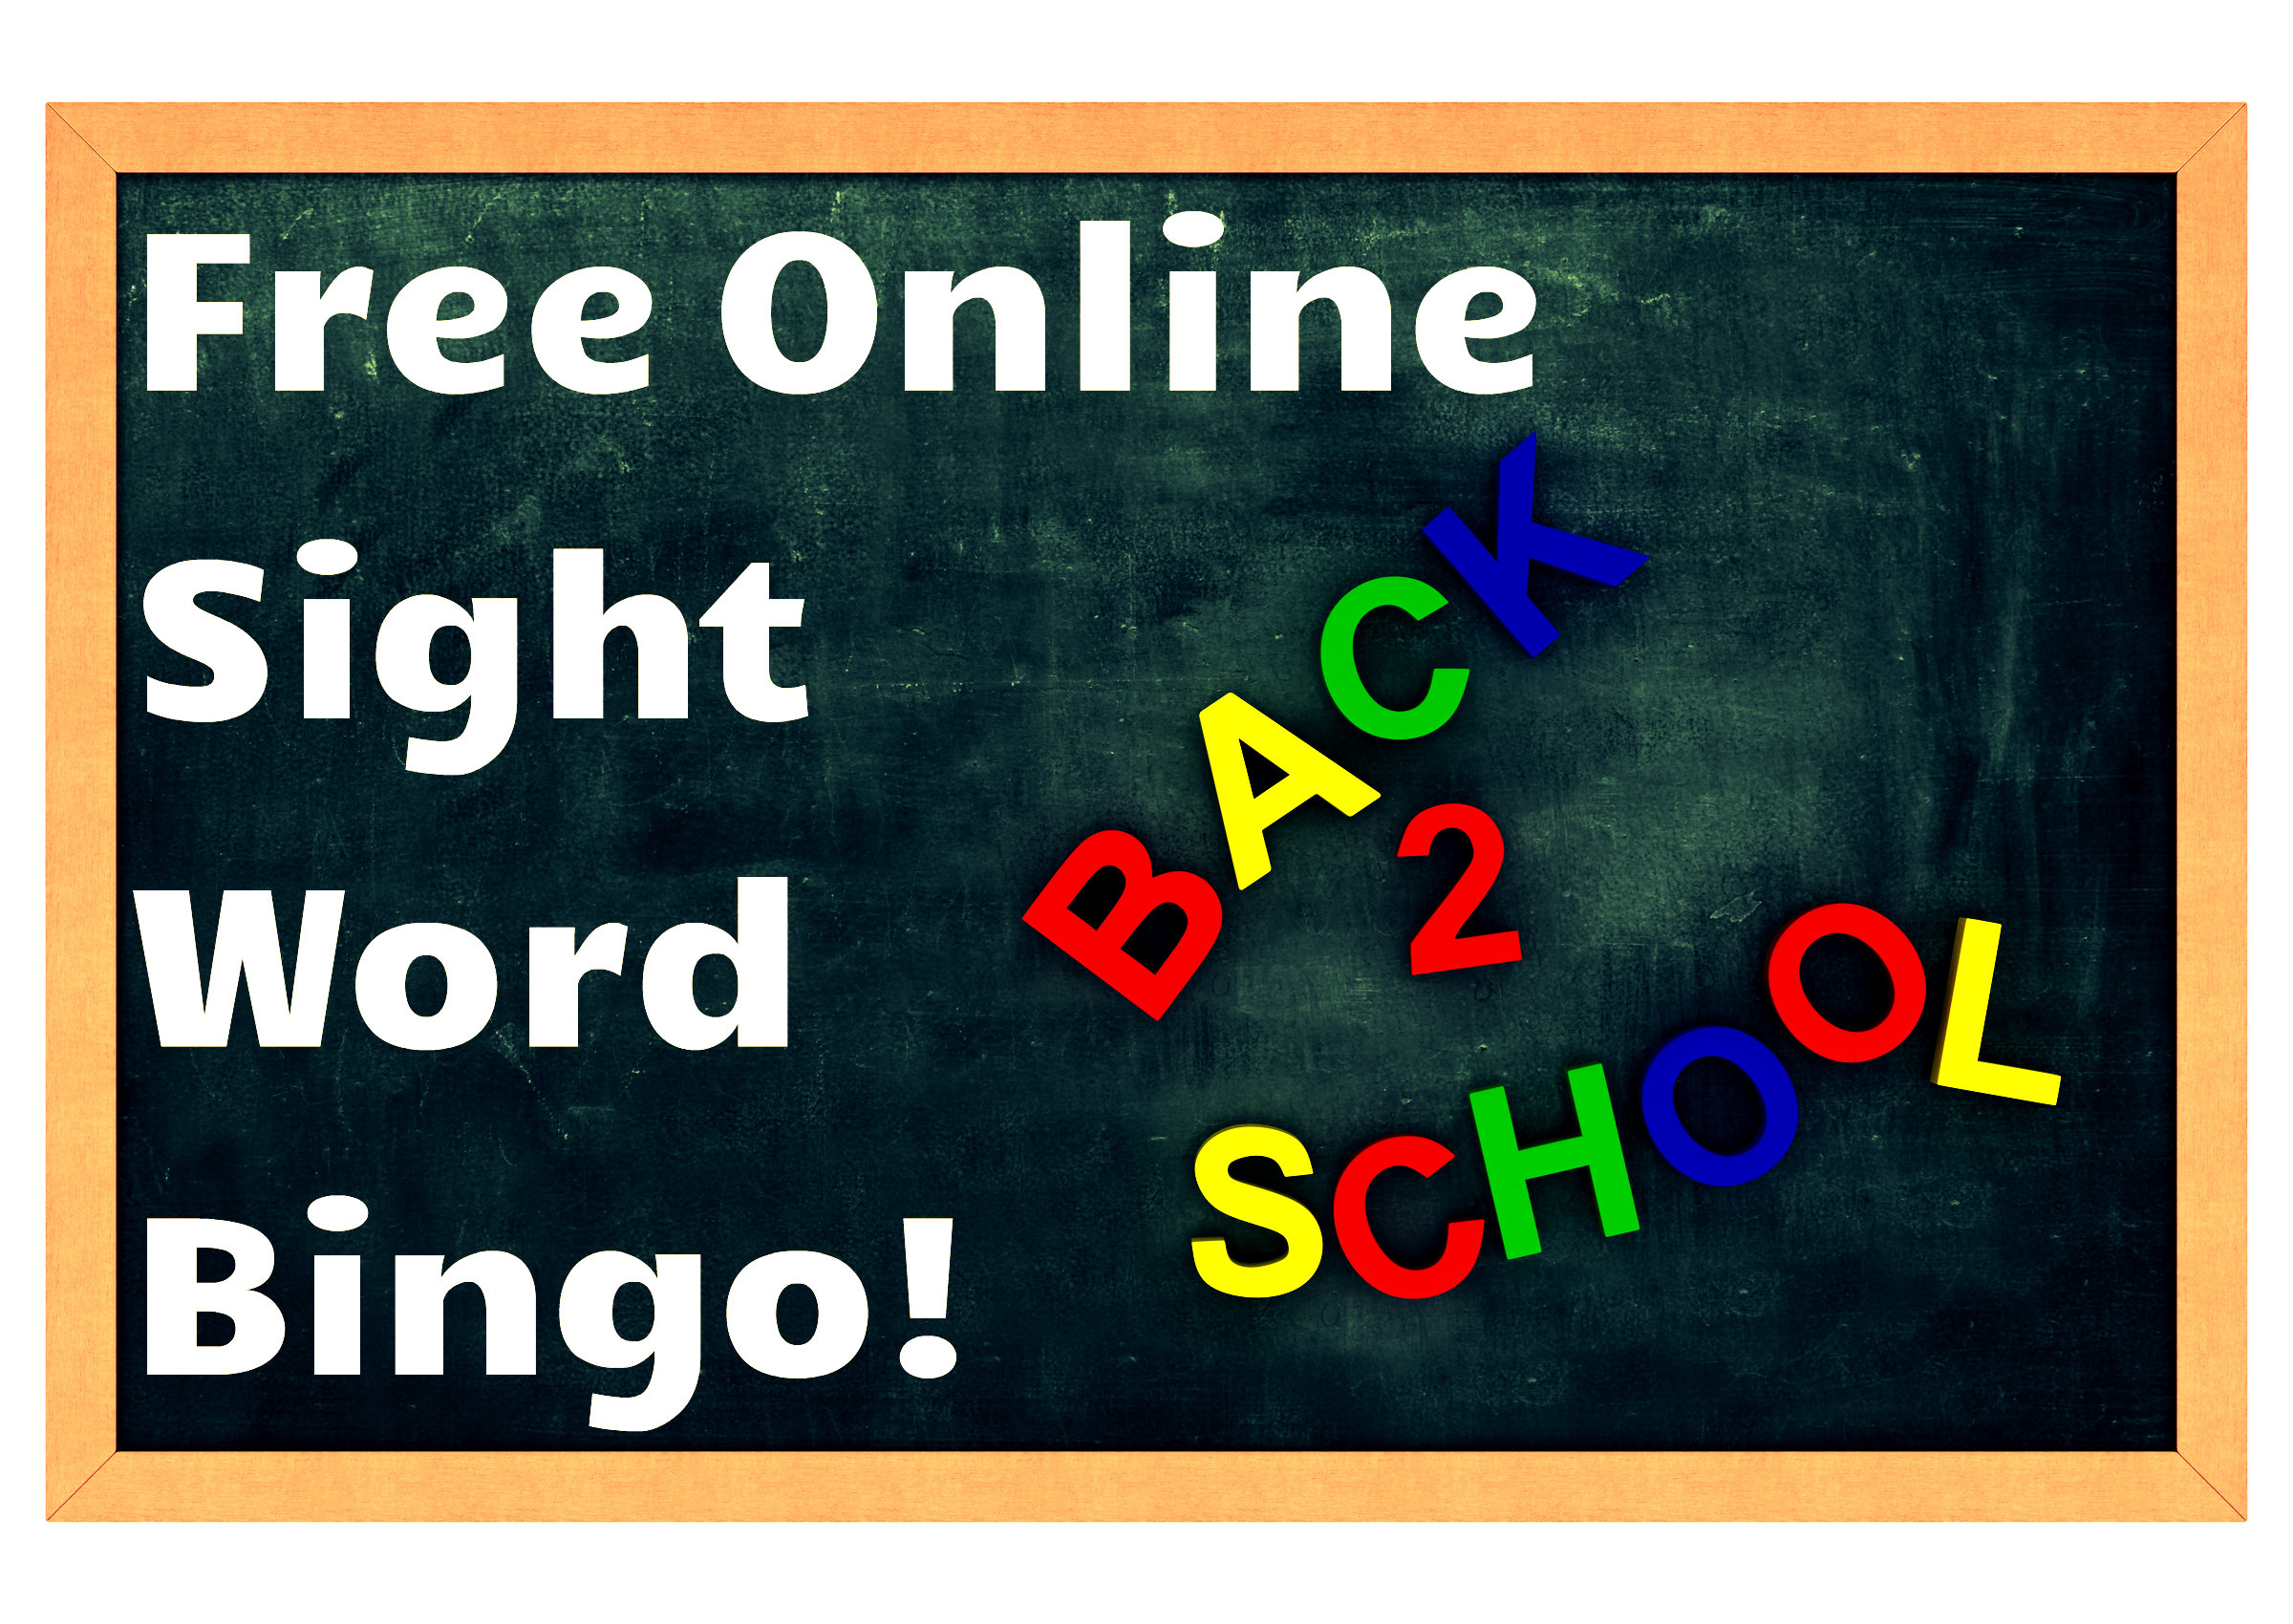 app   Word Activities word Readyteacher    Online Sight Sight Bingo builder Word Free   sight